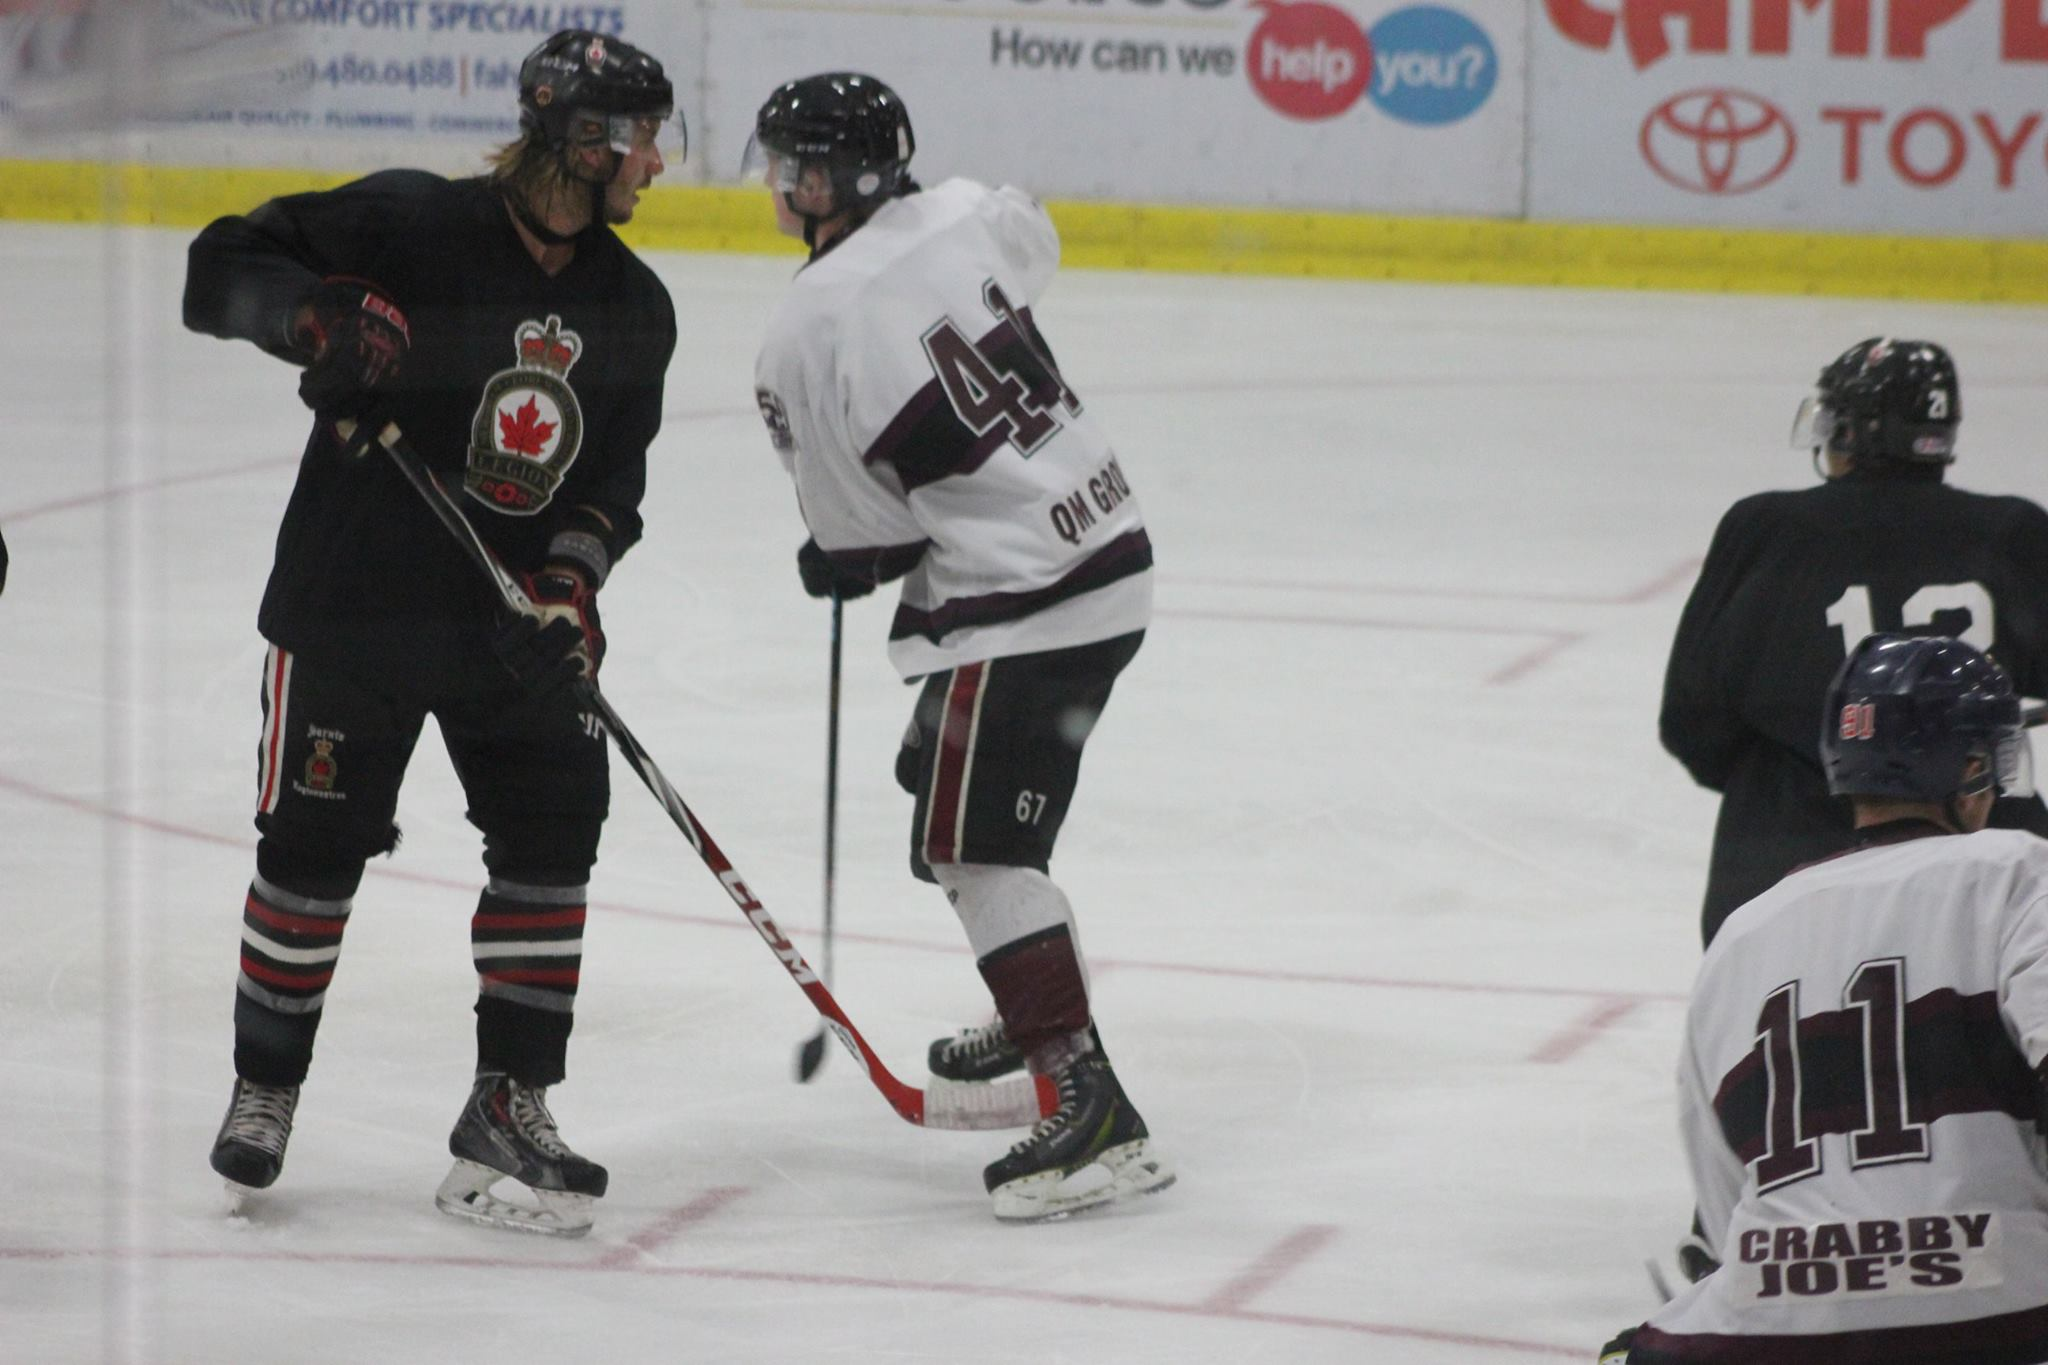 The Chatham Maroons take on the Sarnia Legionnaires, September 9, 2015. (Photo courtesy of Jocelyn McLaughlin)